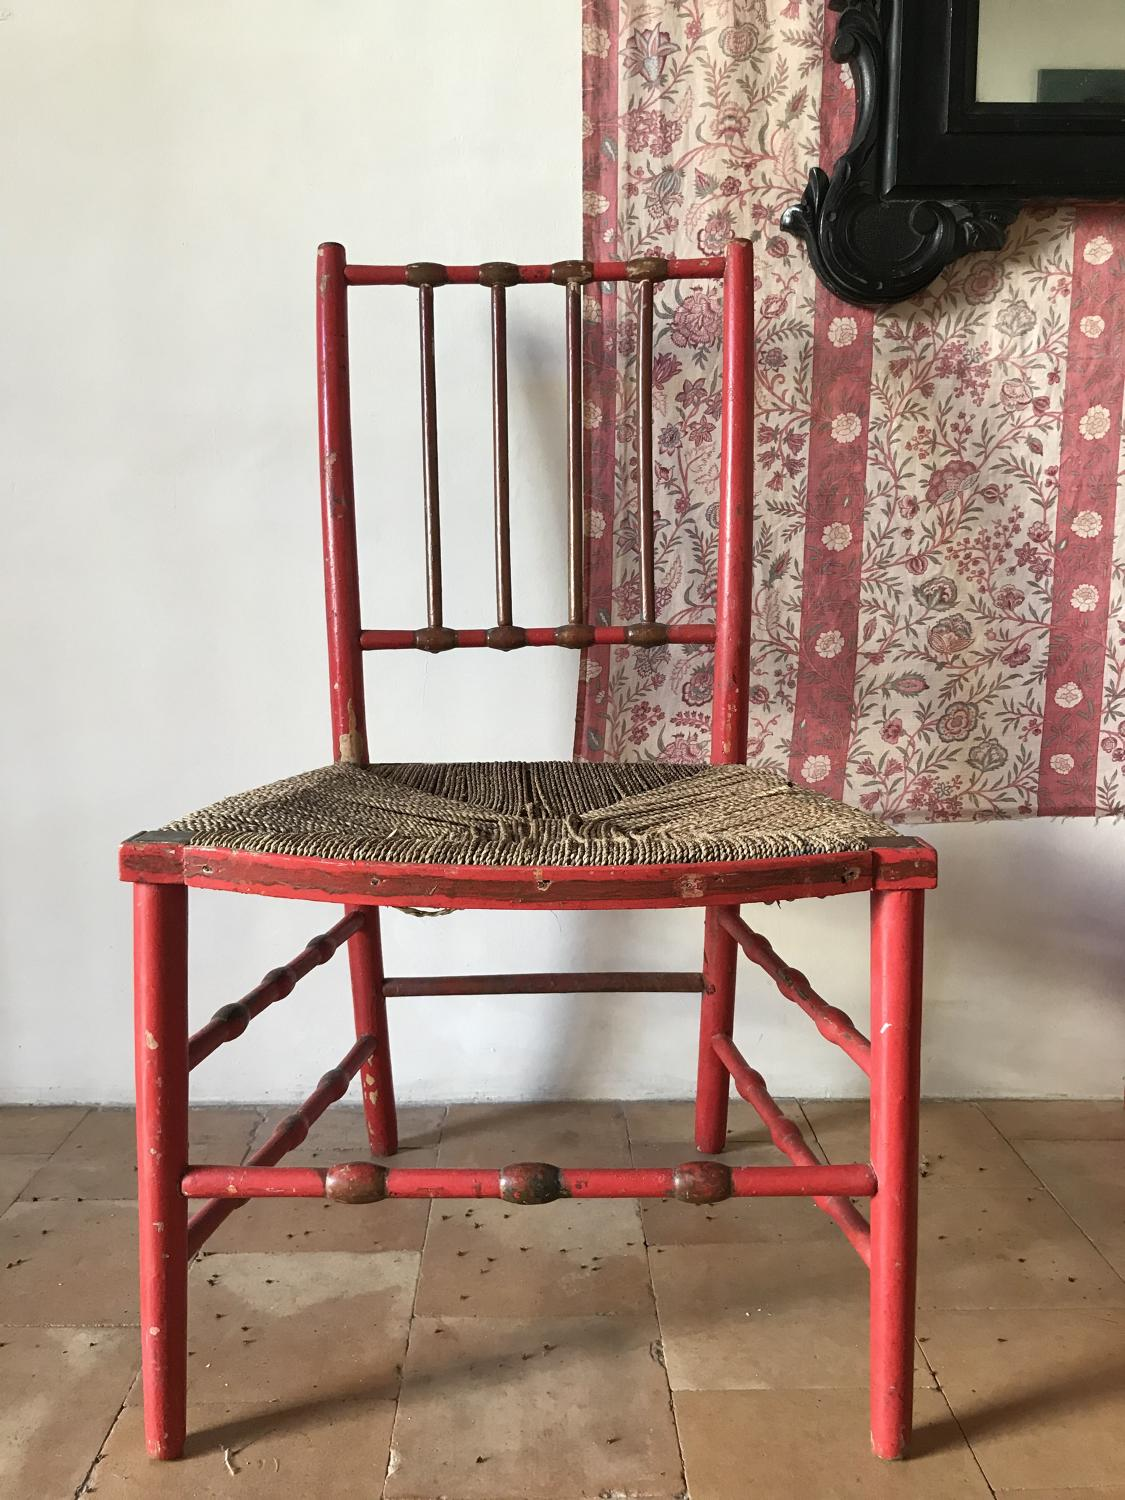 A Pair of 19th century painted red chairs